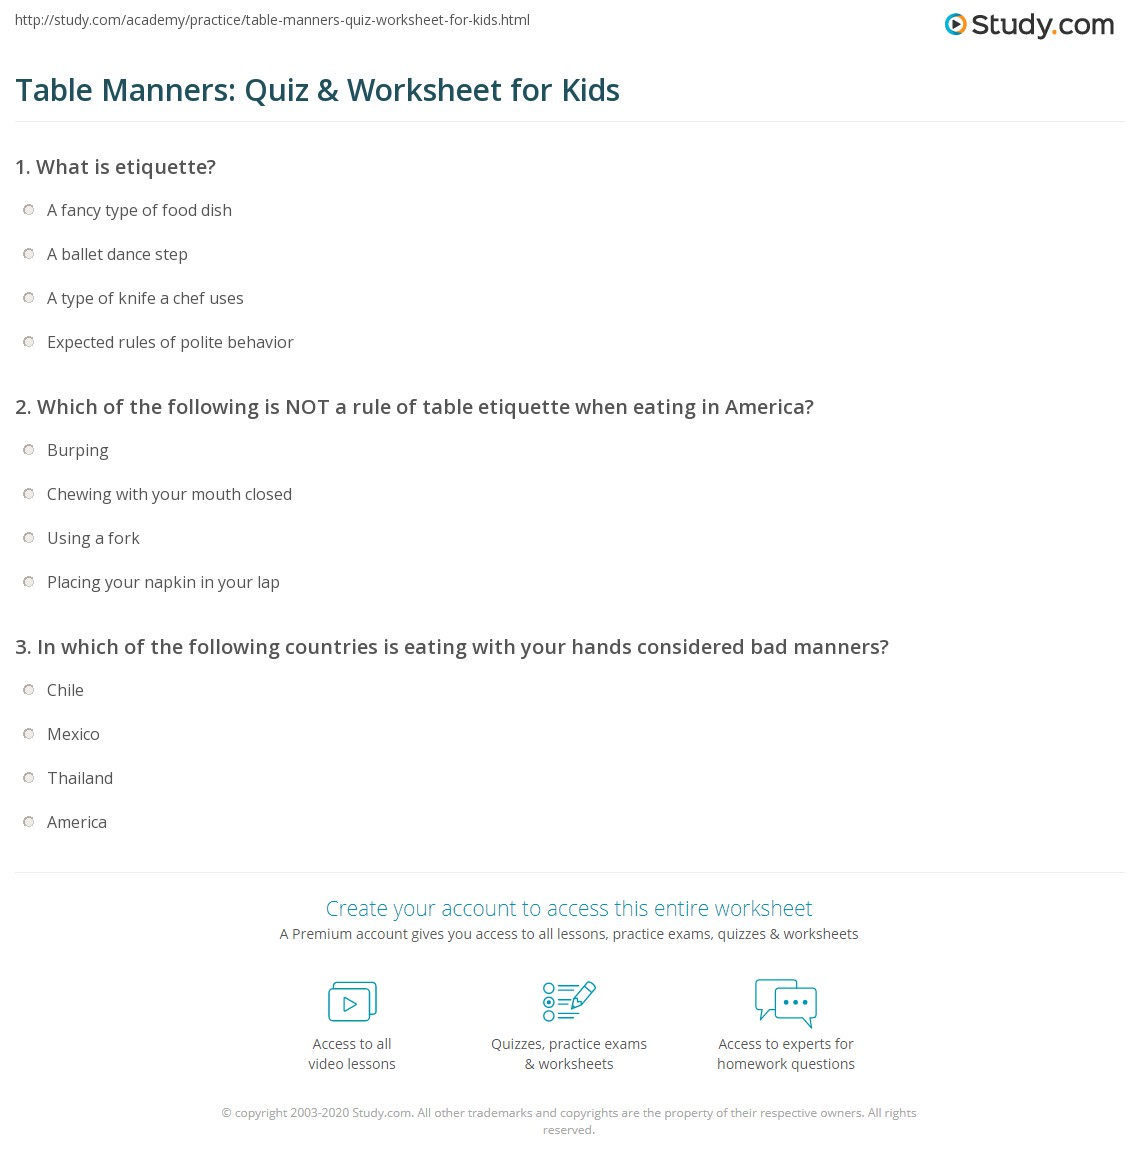 Table Manners Quiz Amp Worksheet For Kids